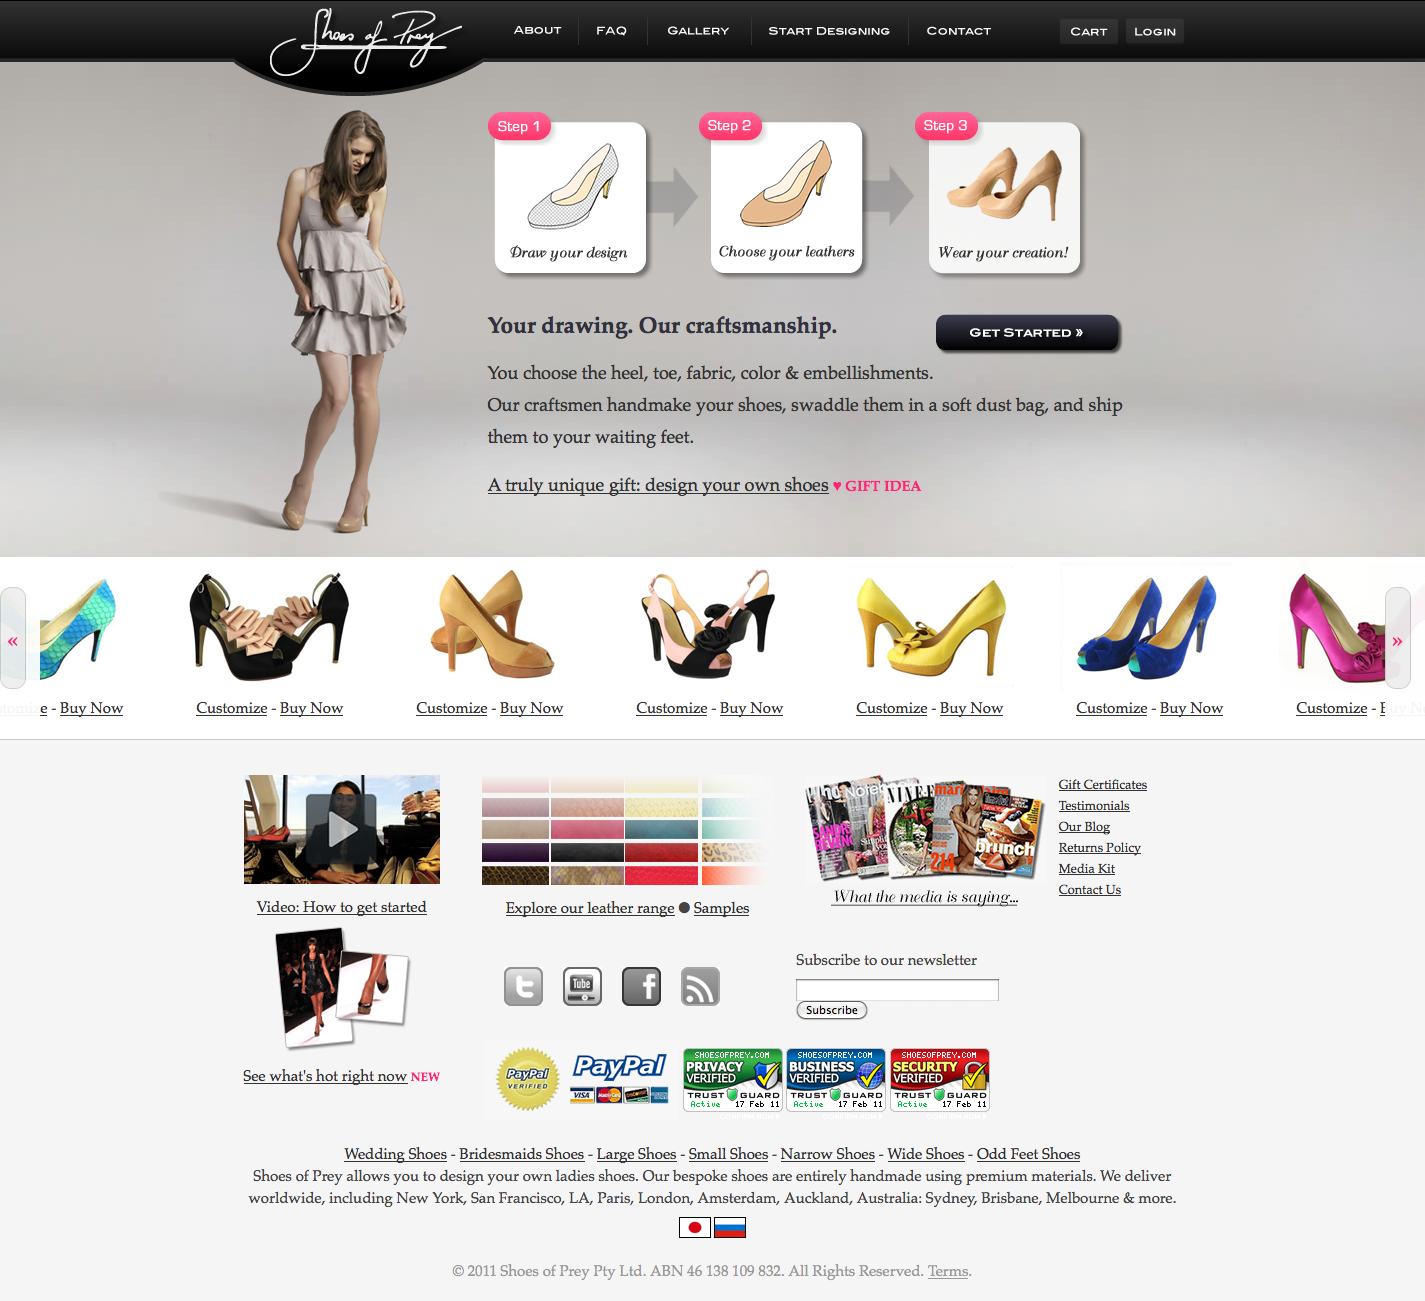 Design-your-own-bespoke-womens-shoes-Shoes-of-Prey_1297999493141